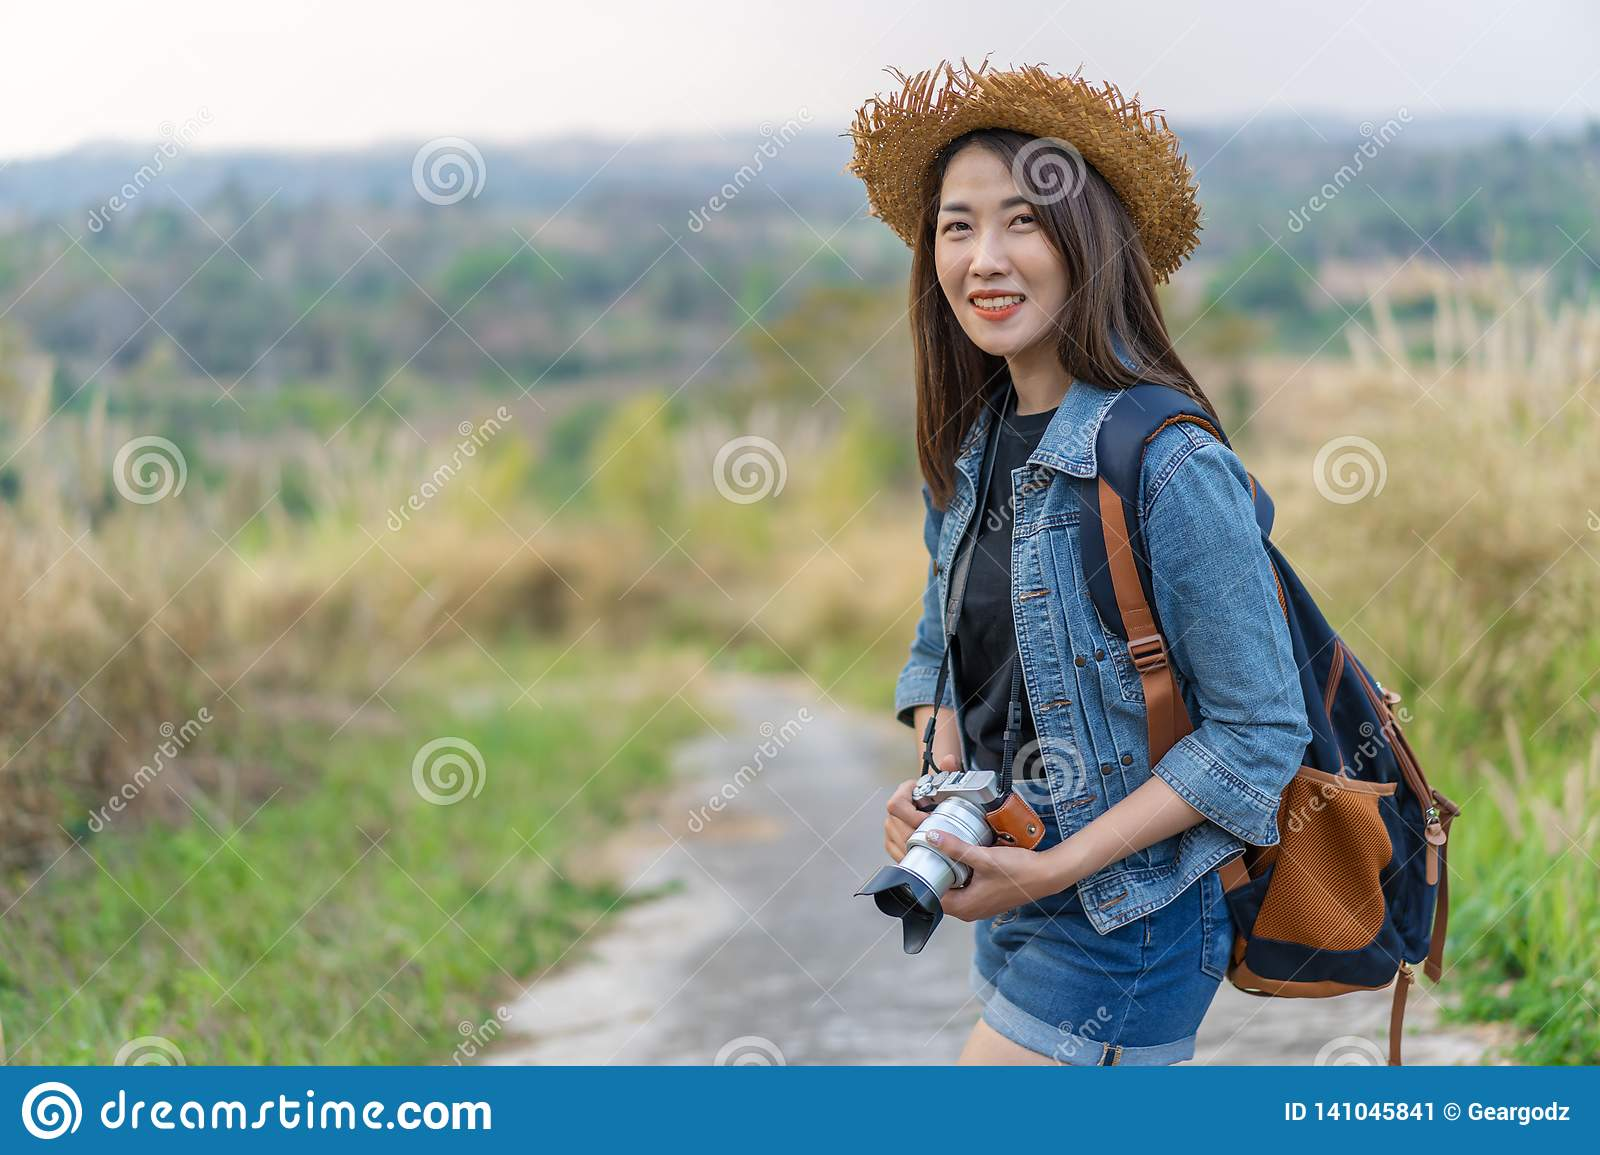 Female tourist with backpack and camera in countryside